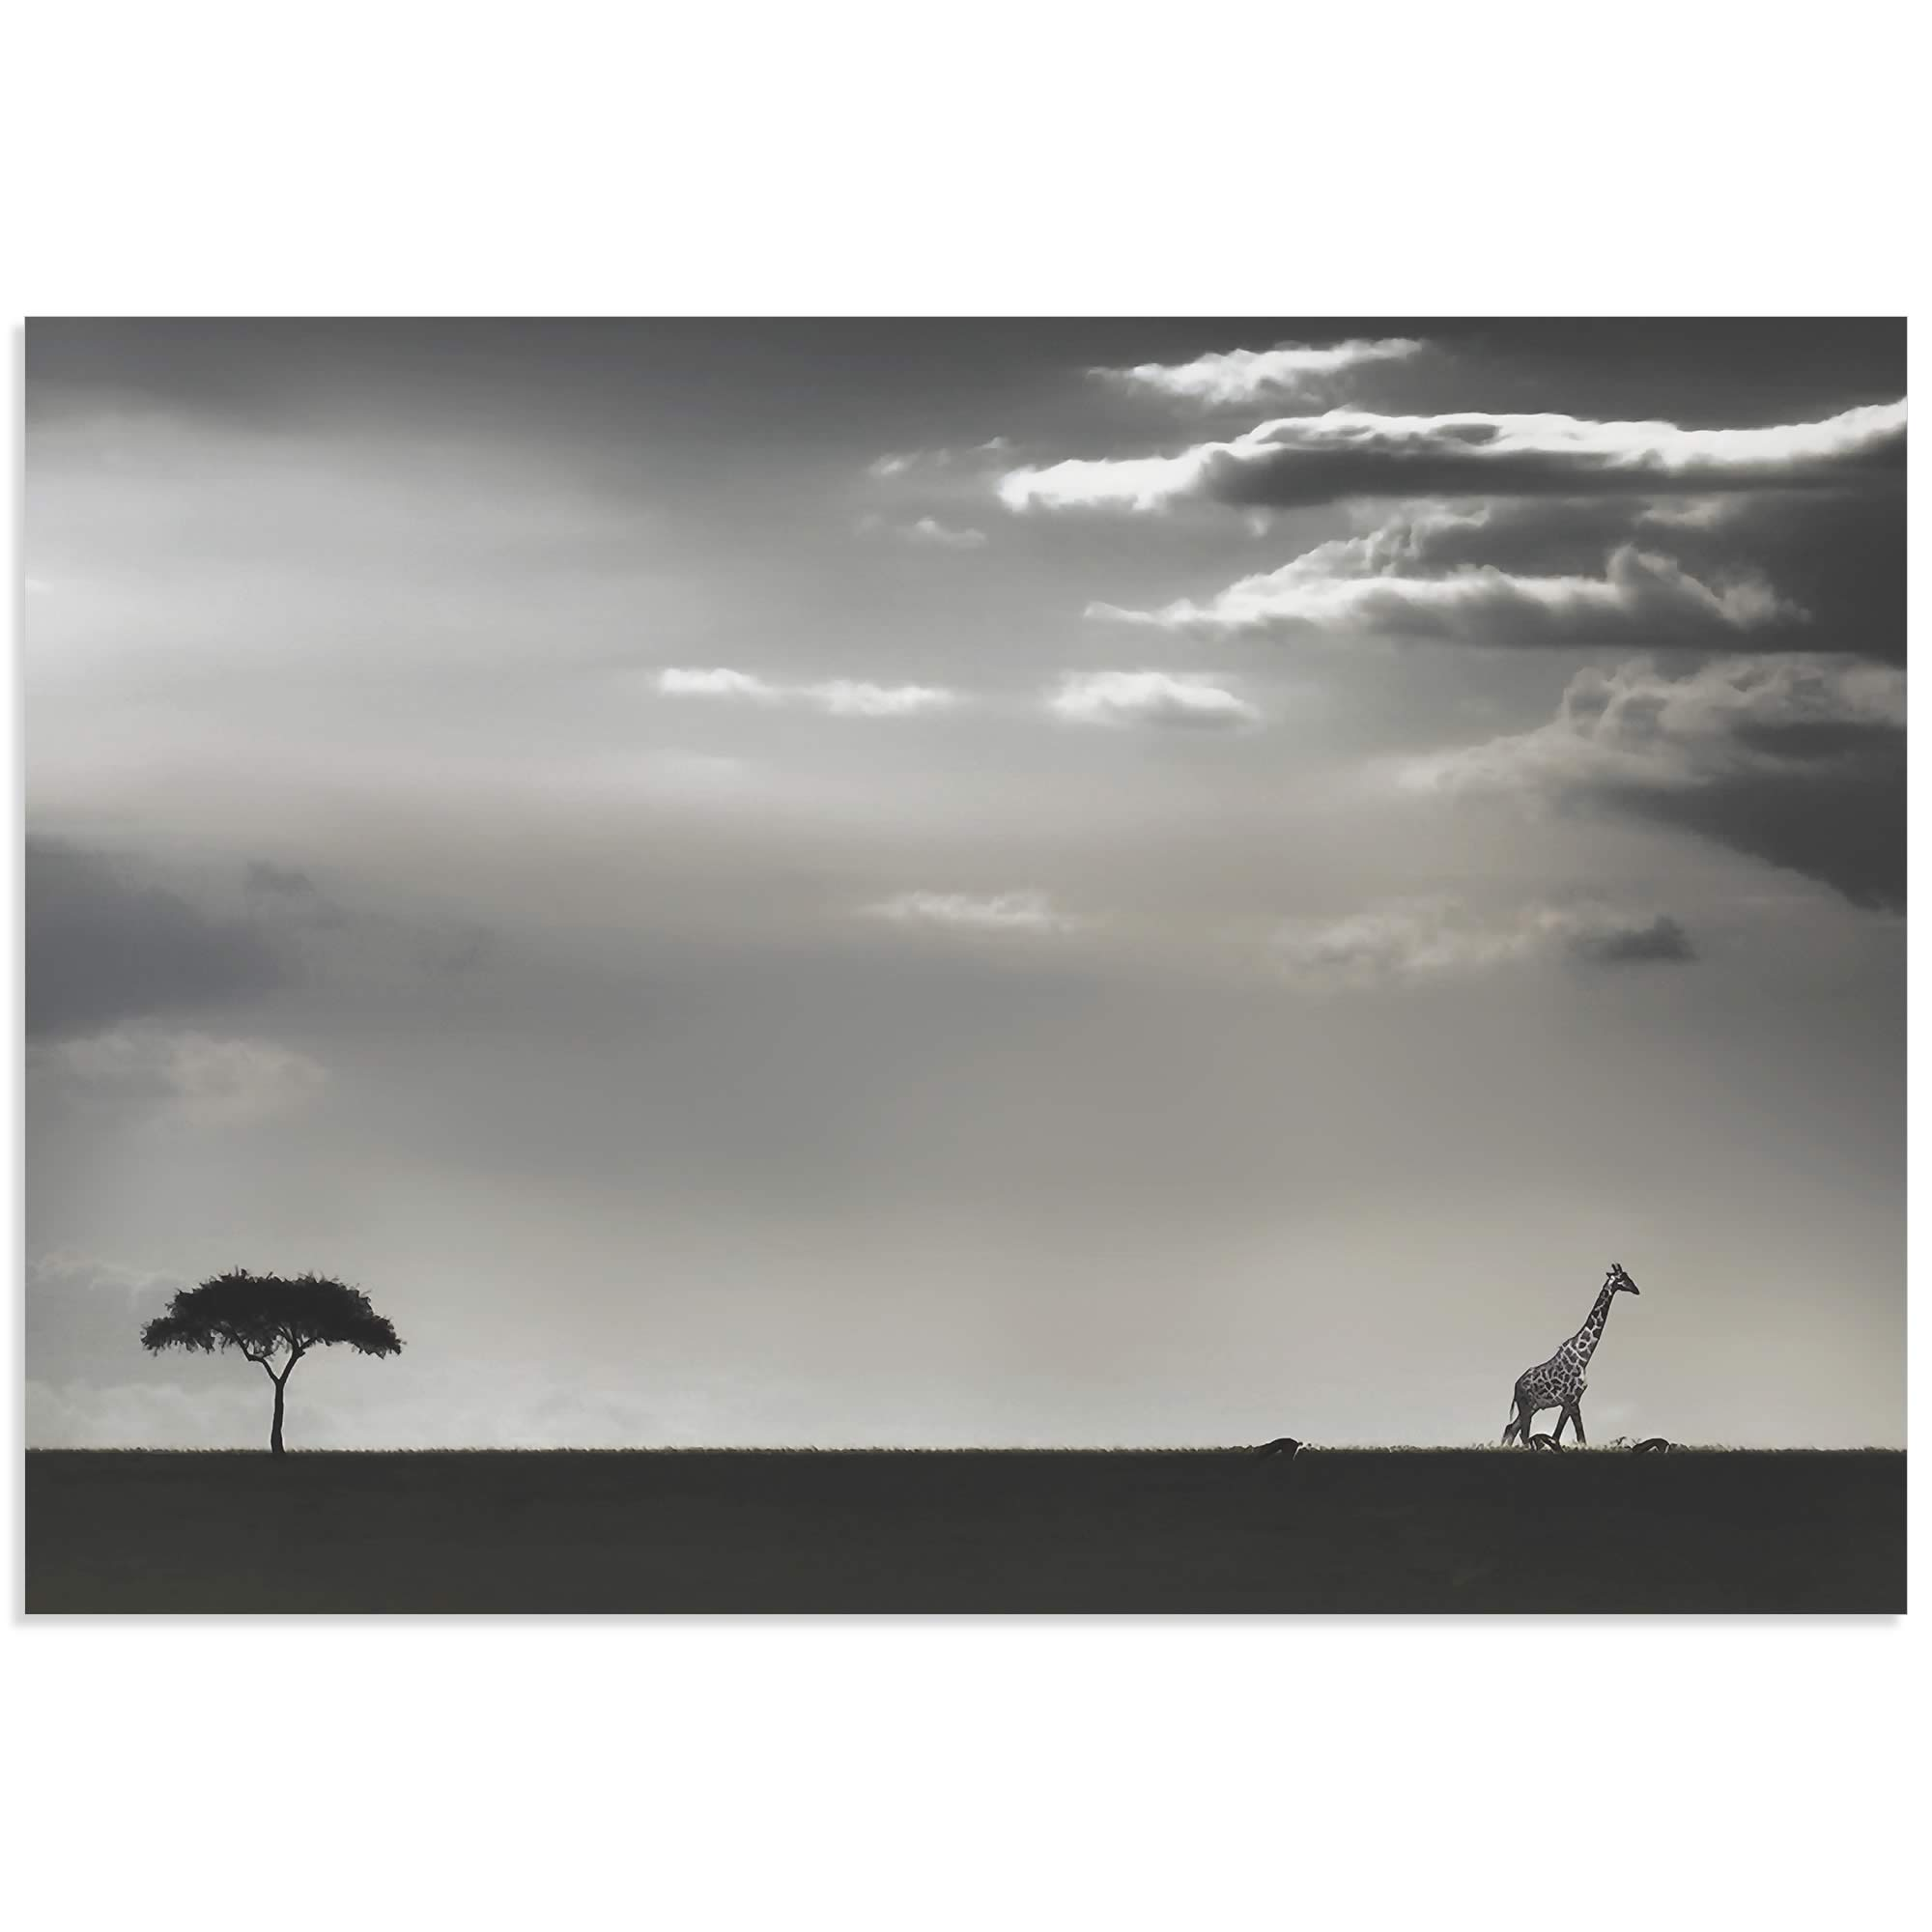 Giraffe on the Horizon by Piet Flour - Giraffe Wall Art on Metal or Acrylic  sc 1 st  Modern Crowd Inc & Metal Art Studio - Giraffe on the Horizon by Piet Flour - Giraffe ...